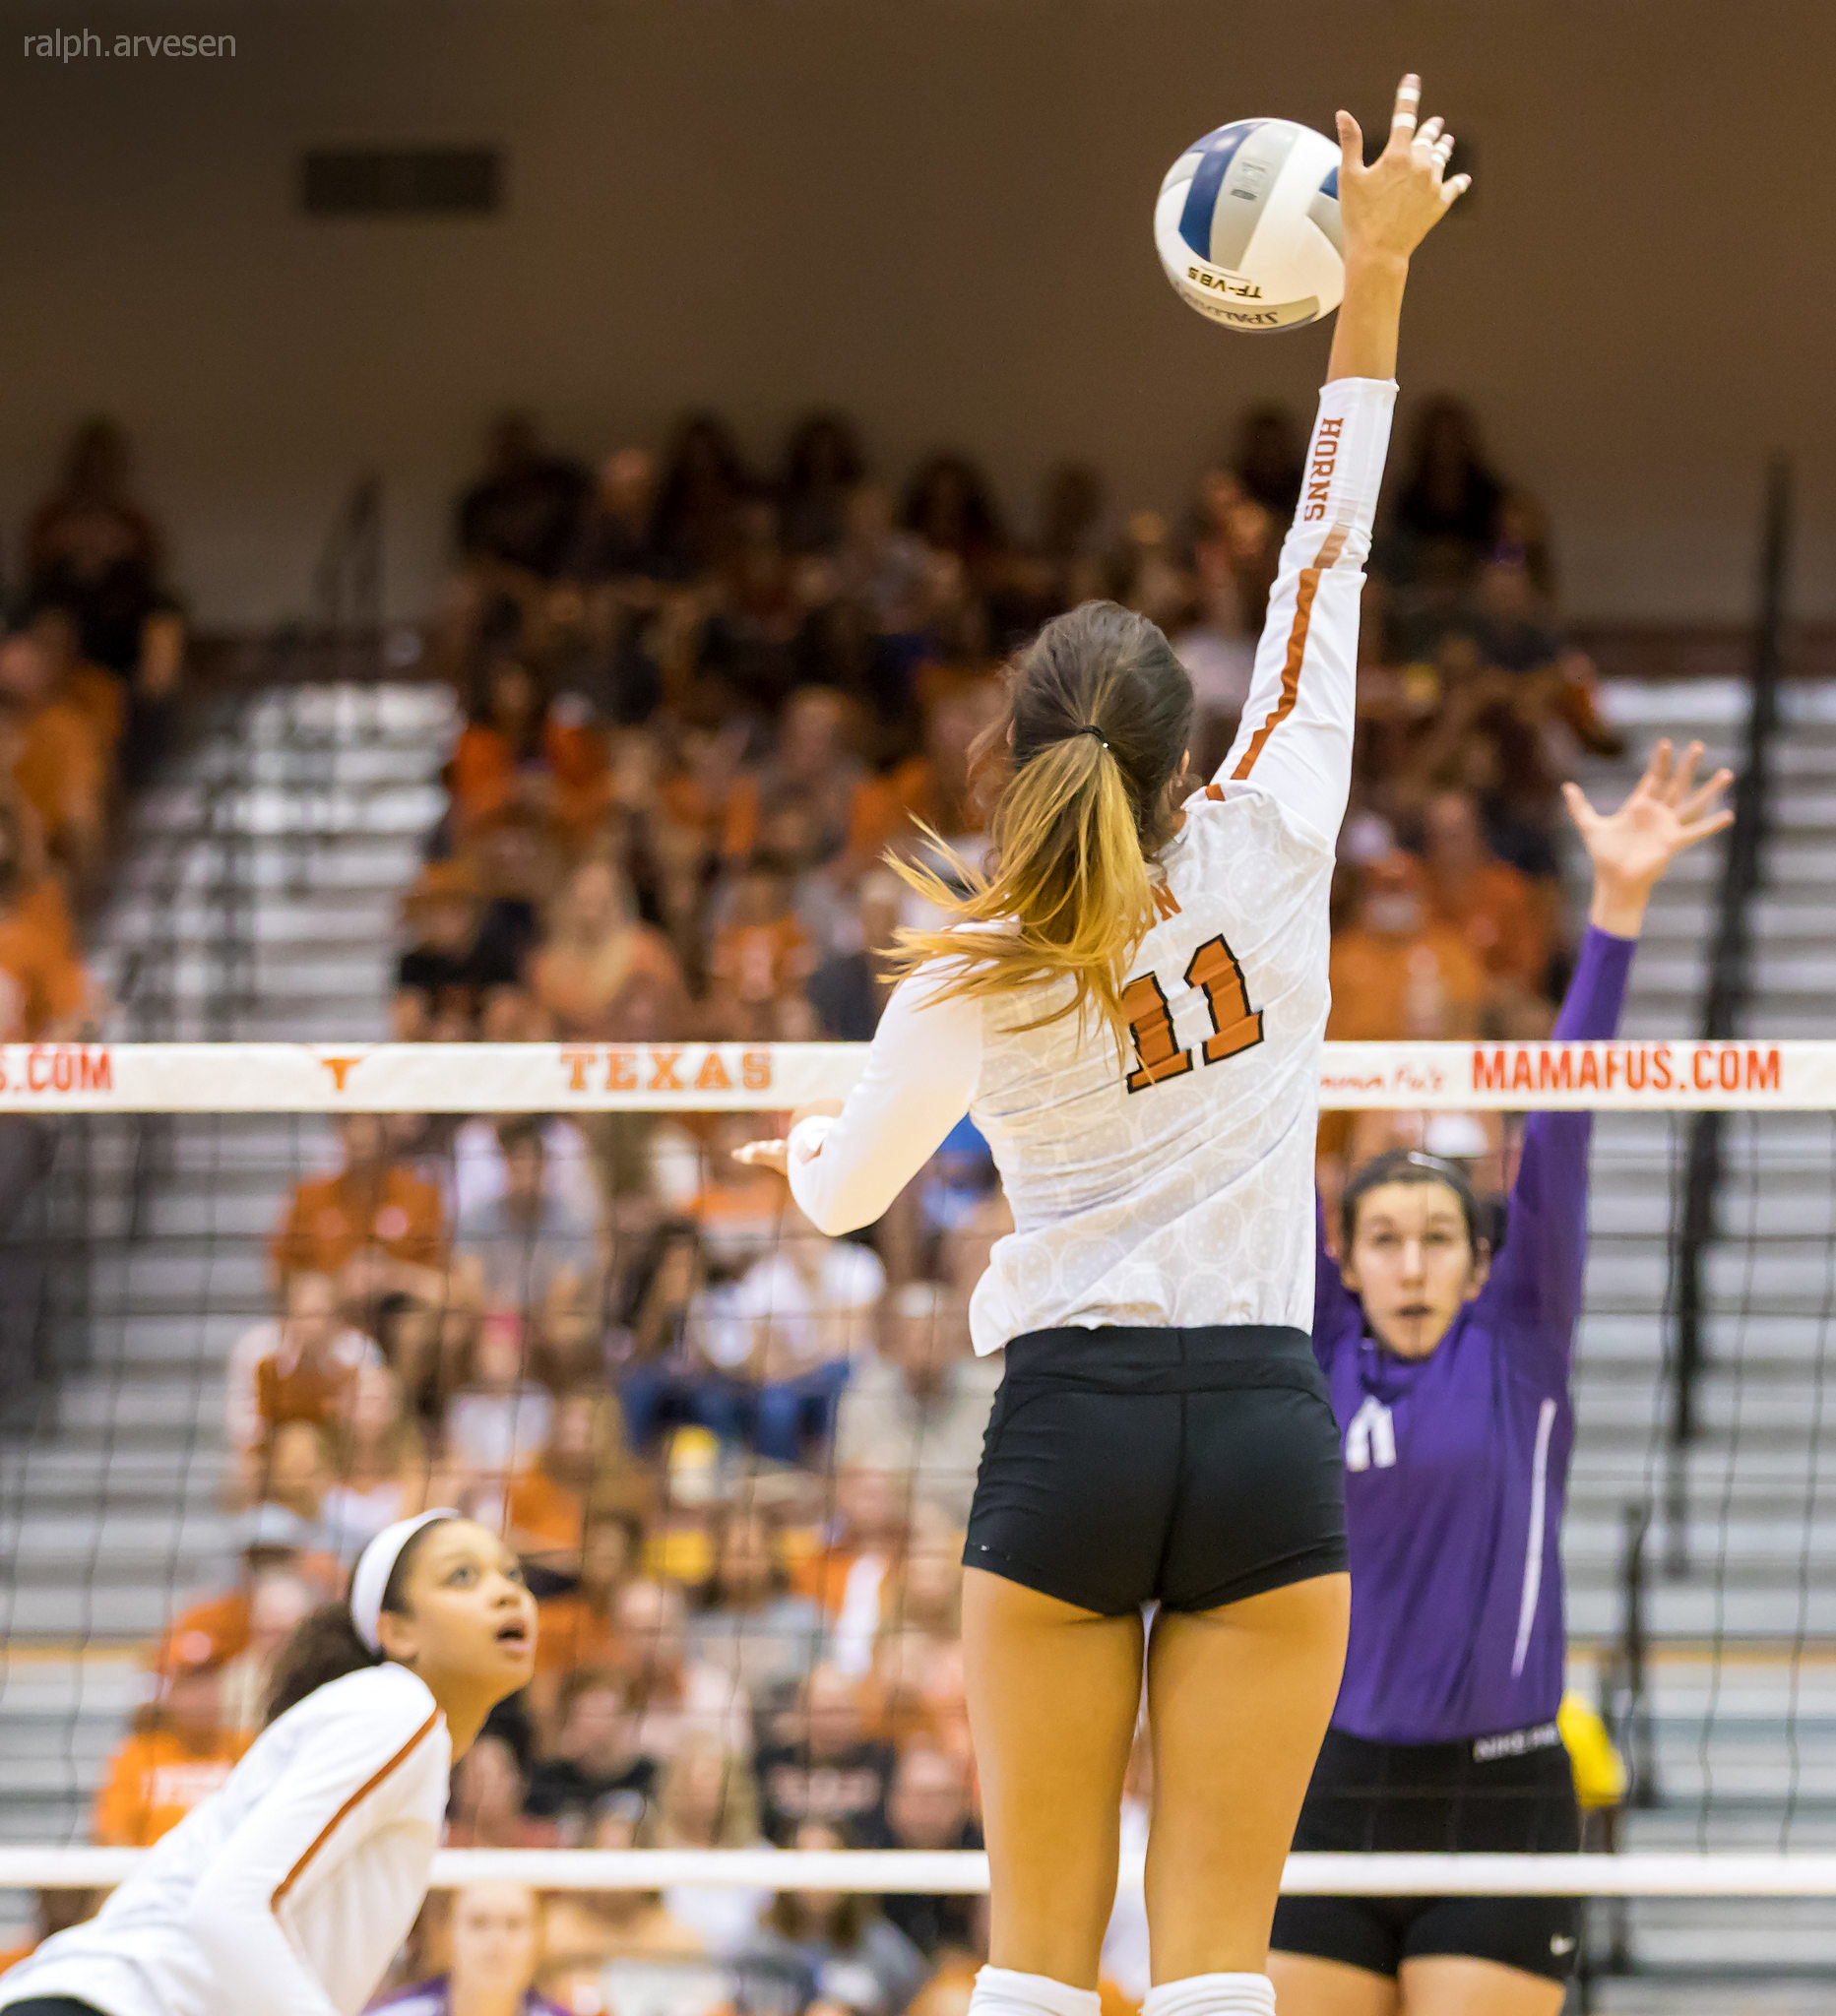 Volleyball Approach: When you take a good aggressive approach, make contact with the ball at its highest point and swing fast and high contacting the ball at its 12 noon point. (Ralph Arvesen)